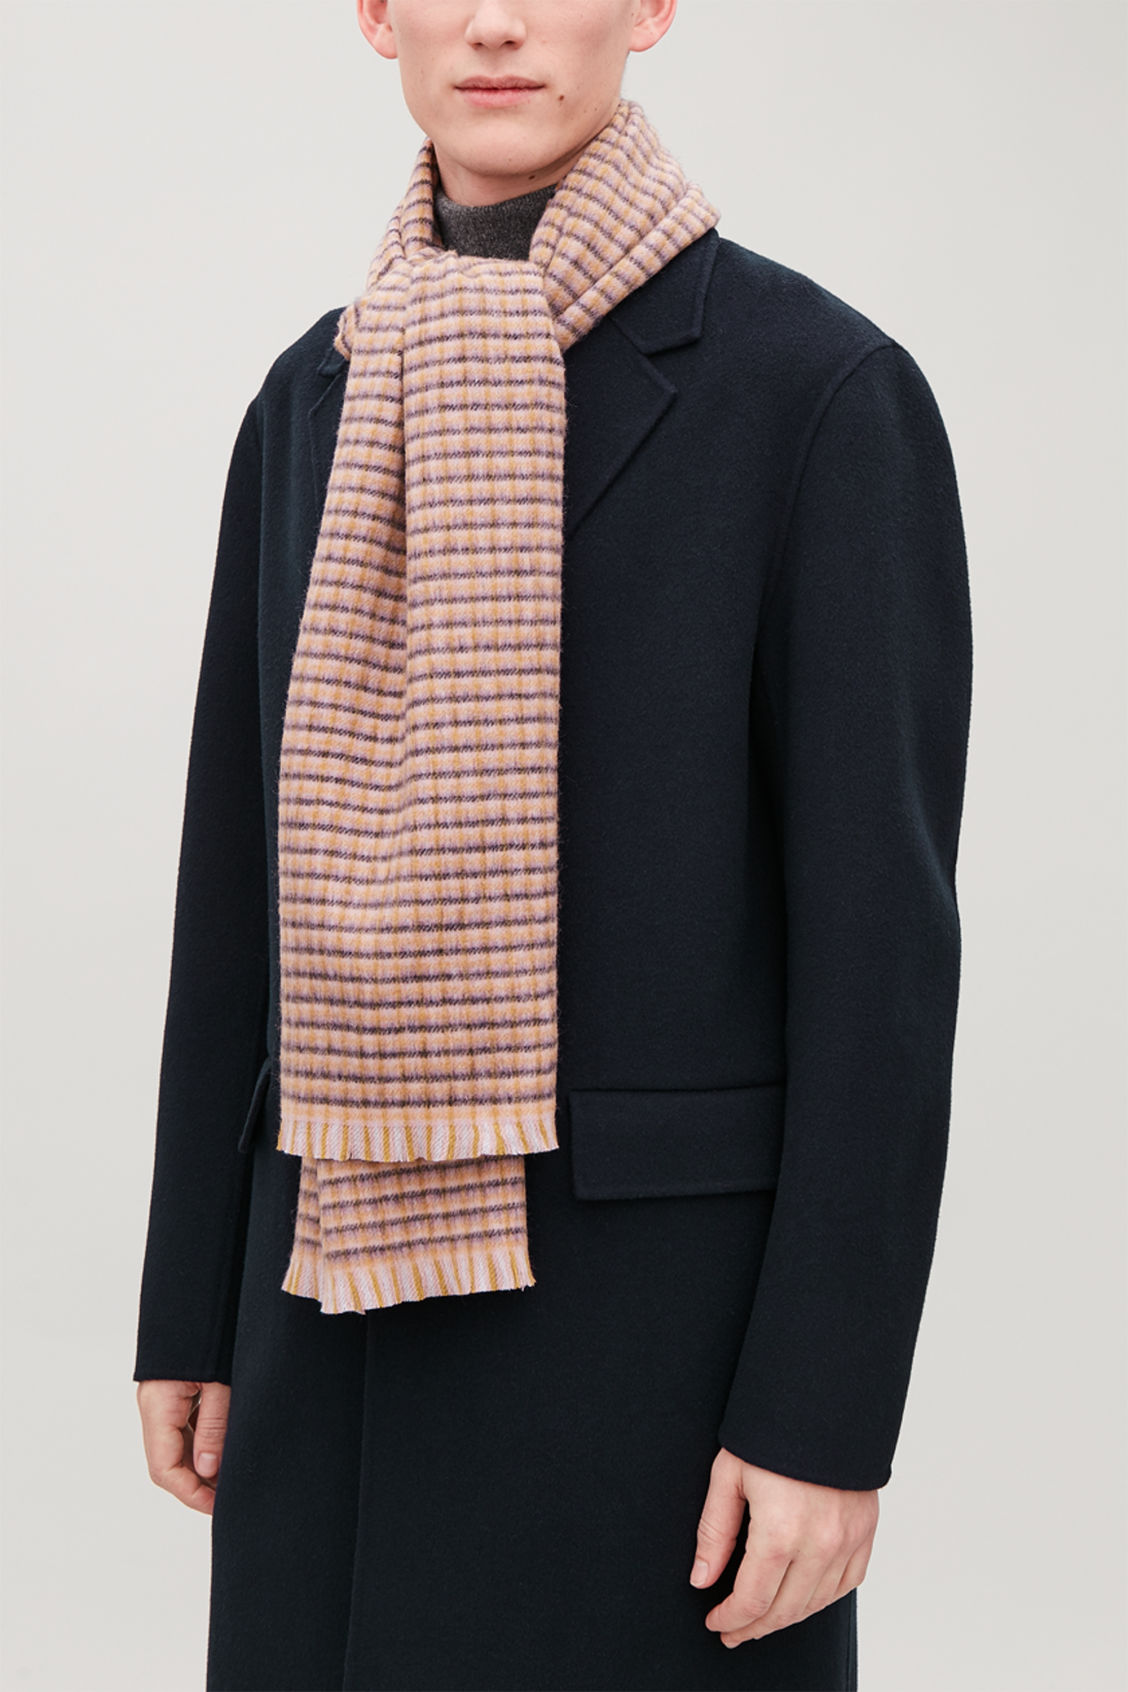 Detailed image of Cos checked wool-cashmere scarf  in blue